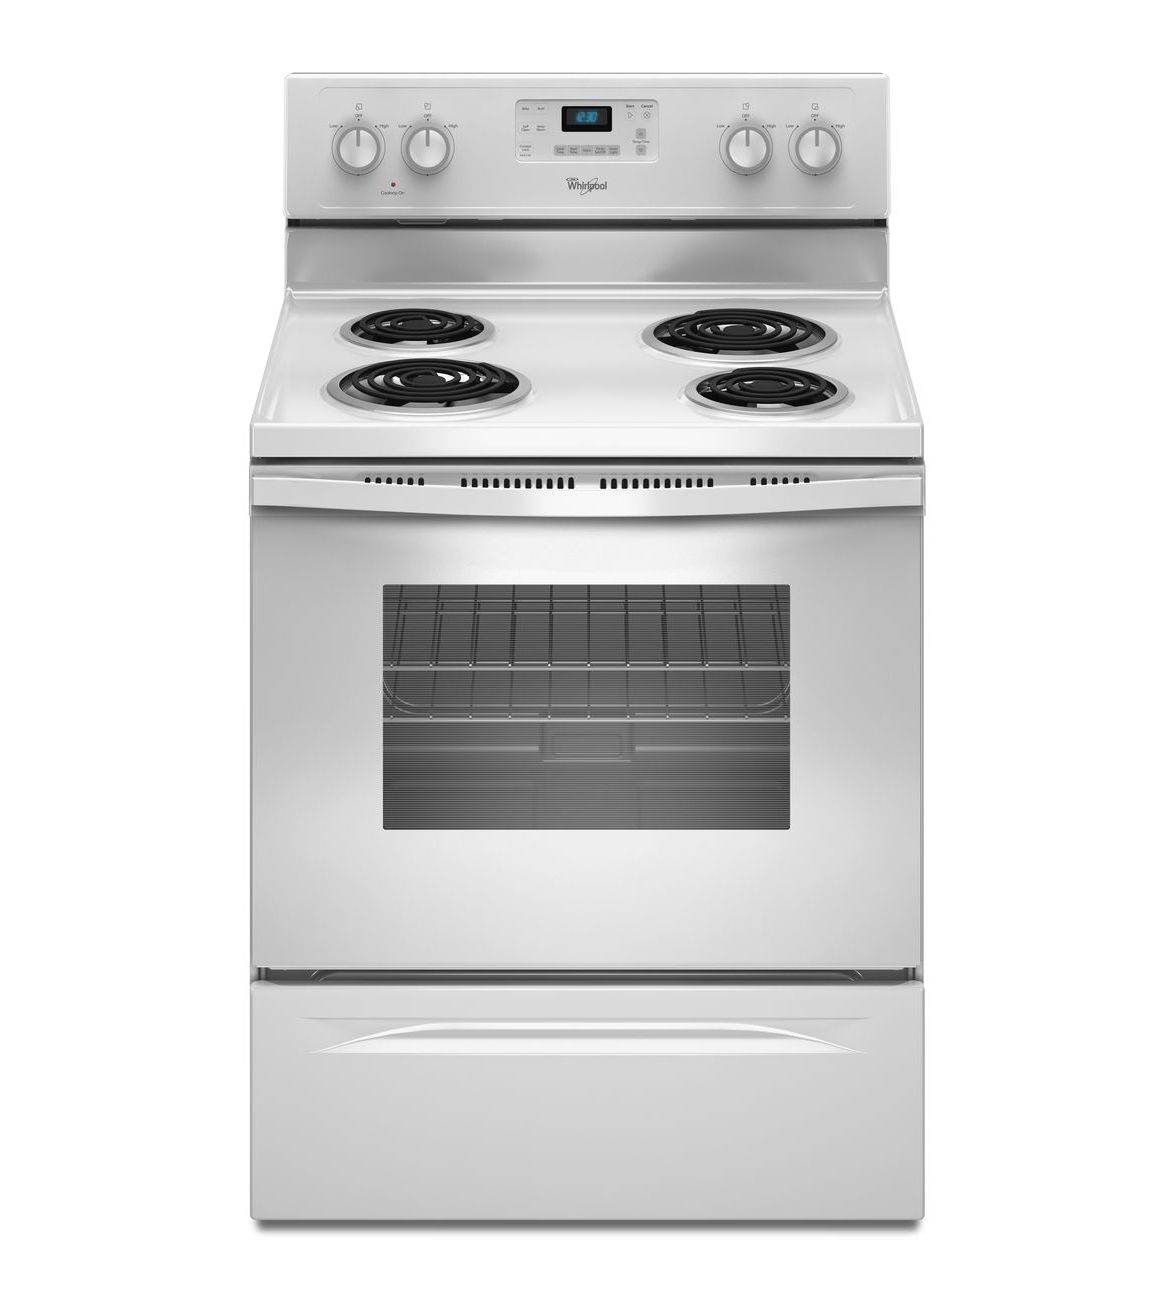 Reliable Appliance Service & Dryer Venting image 3